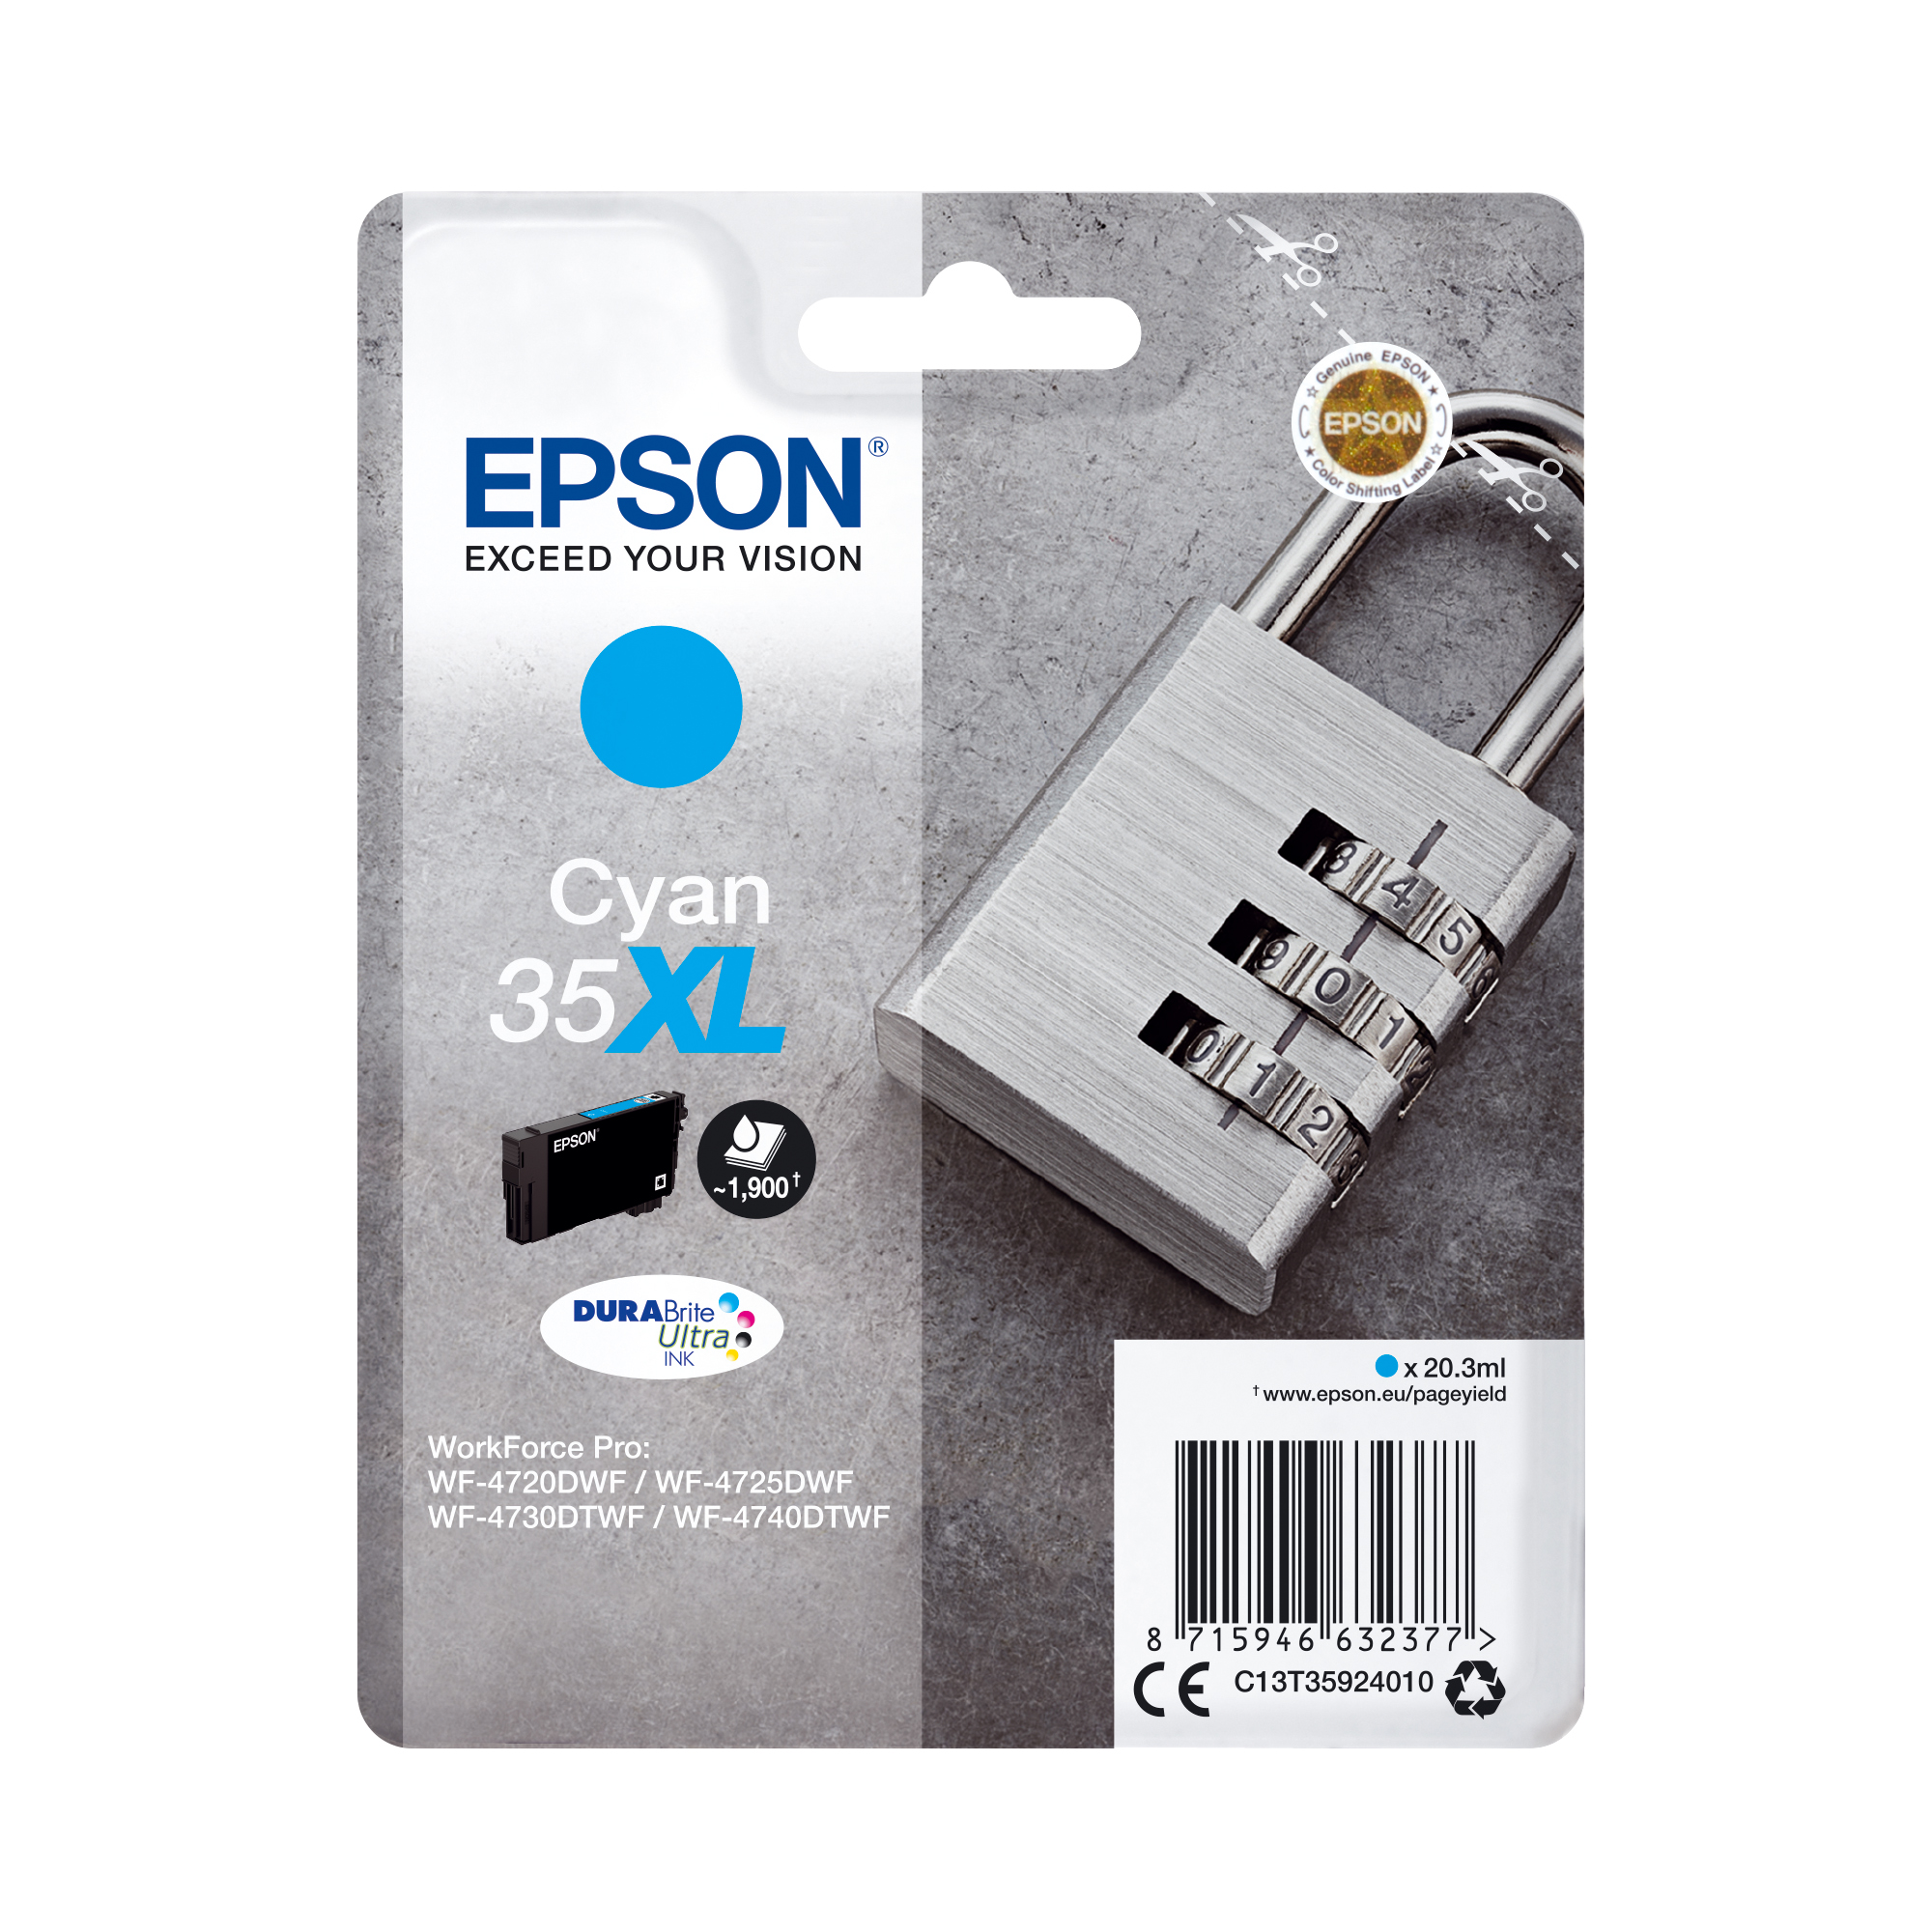 Ink cartridges Epson 35XL Inkjet Cartridge High Yield Page Life 1900pp 20.3ml Cyan Ref C13T35924010